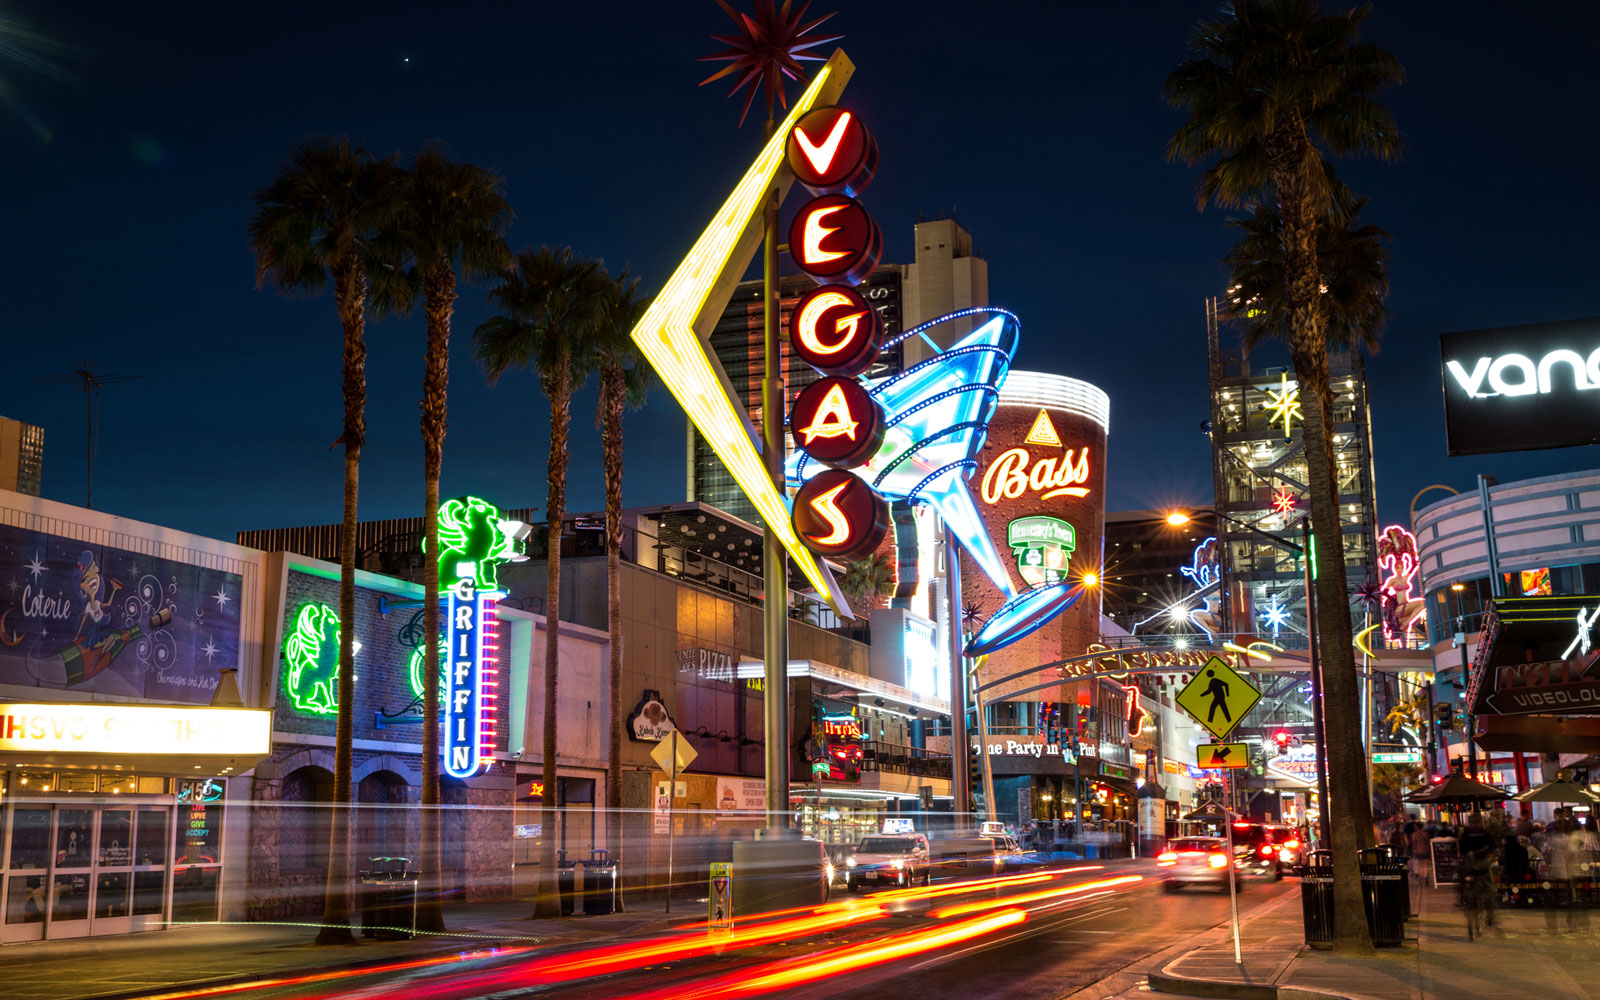 Health Officials Confirm a Case of the Measles on Las Vegas Strip